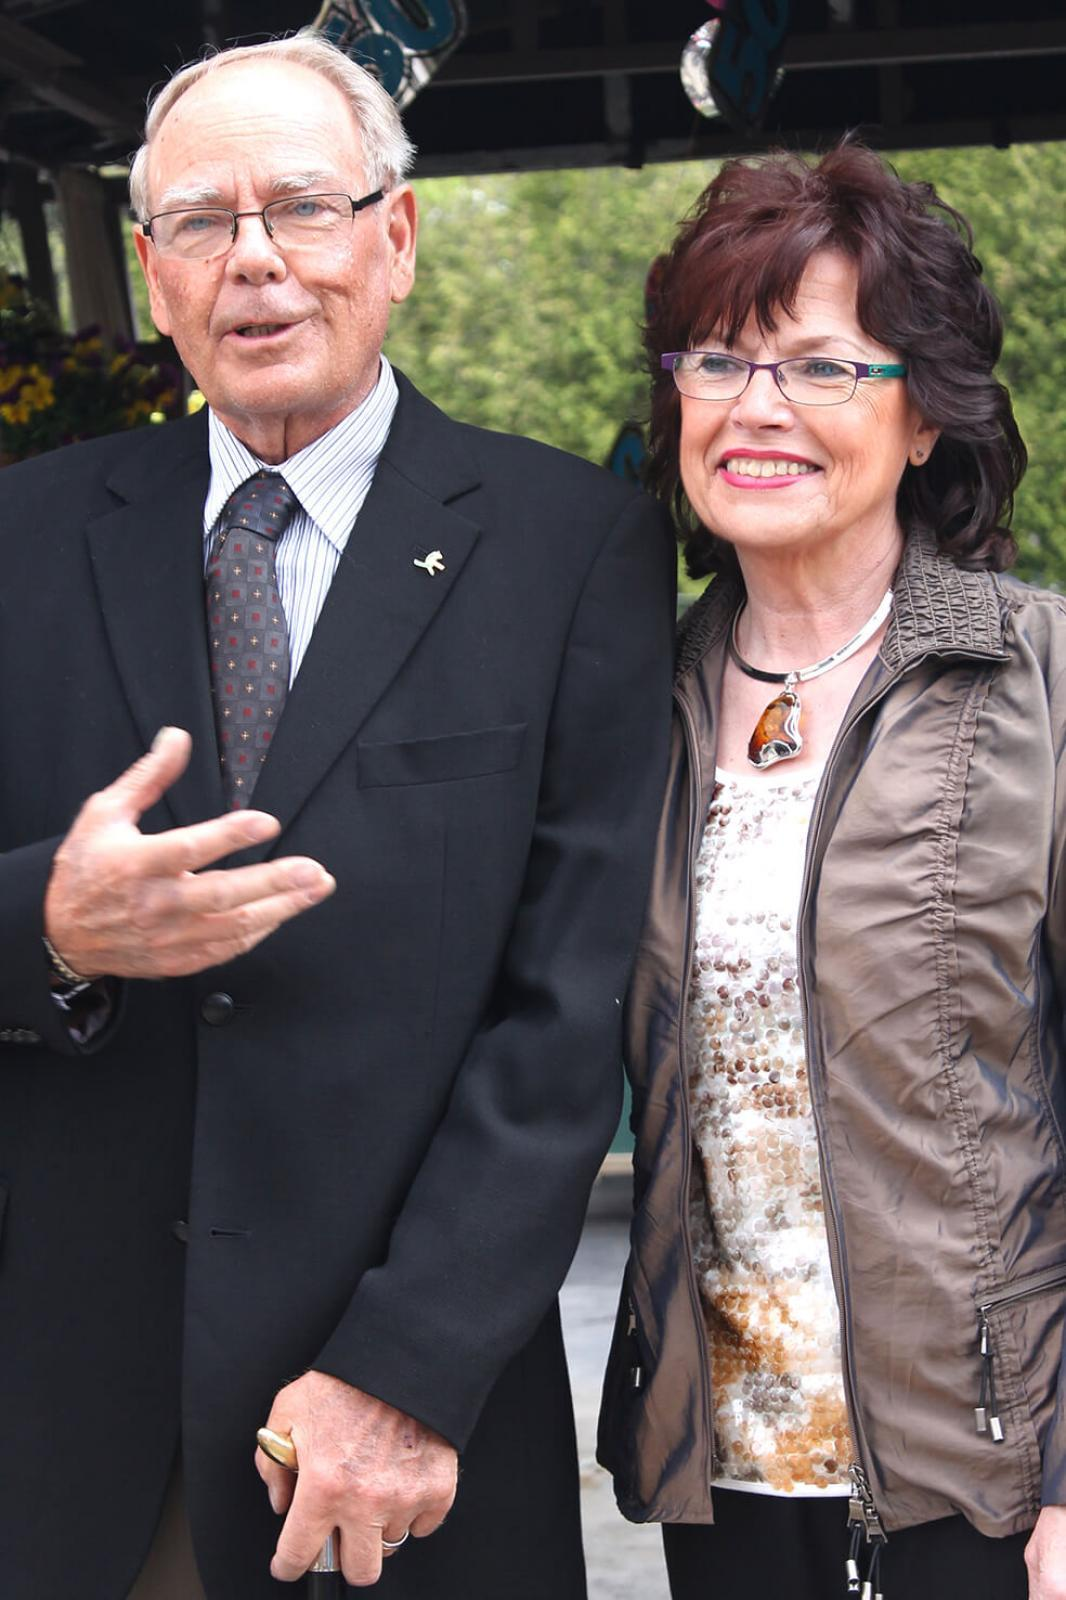 Peter and Doreen Olsen thank the many people who attended Royal City Nursery's 50th anniversary.